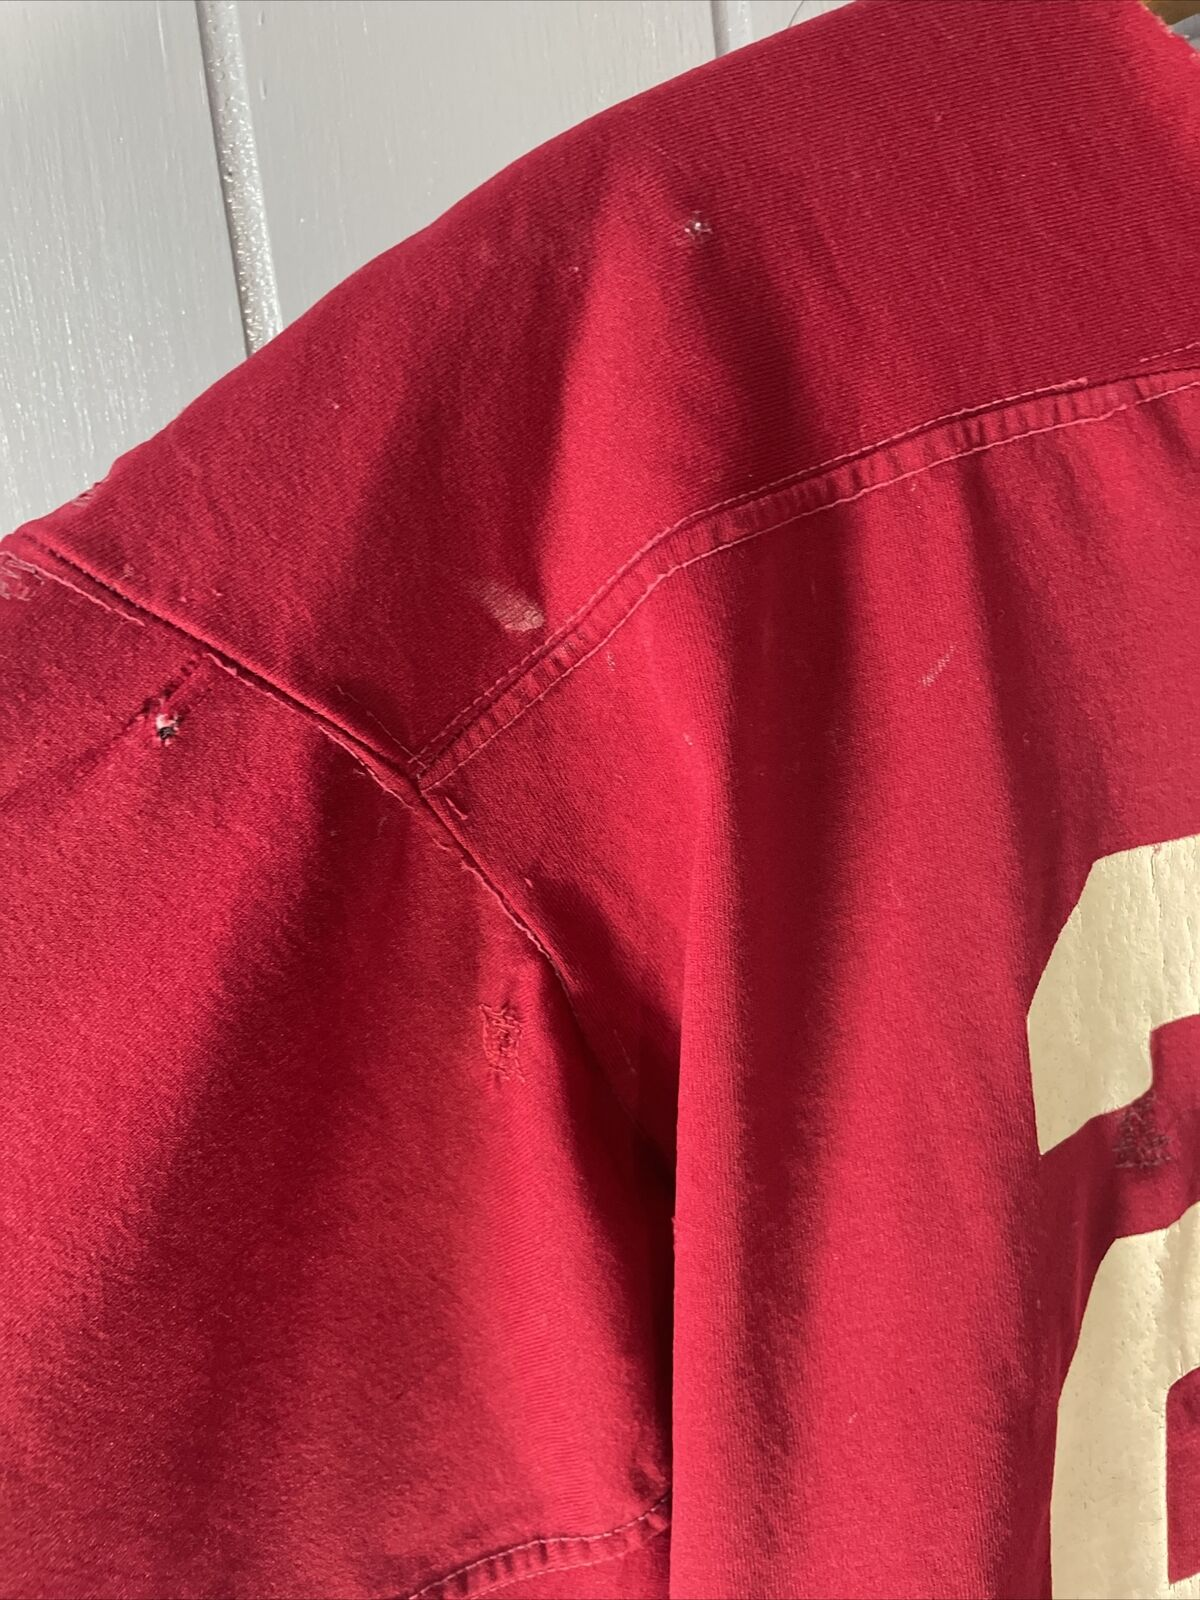 VTG 70's Russell Athletic Red Football Jersey #21… - image 5